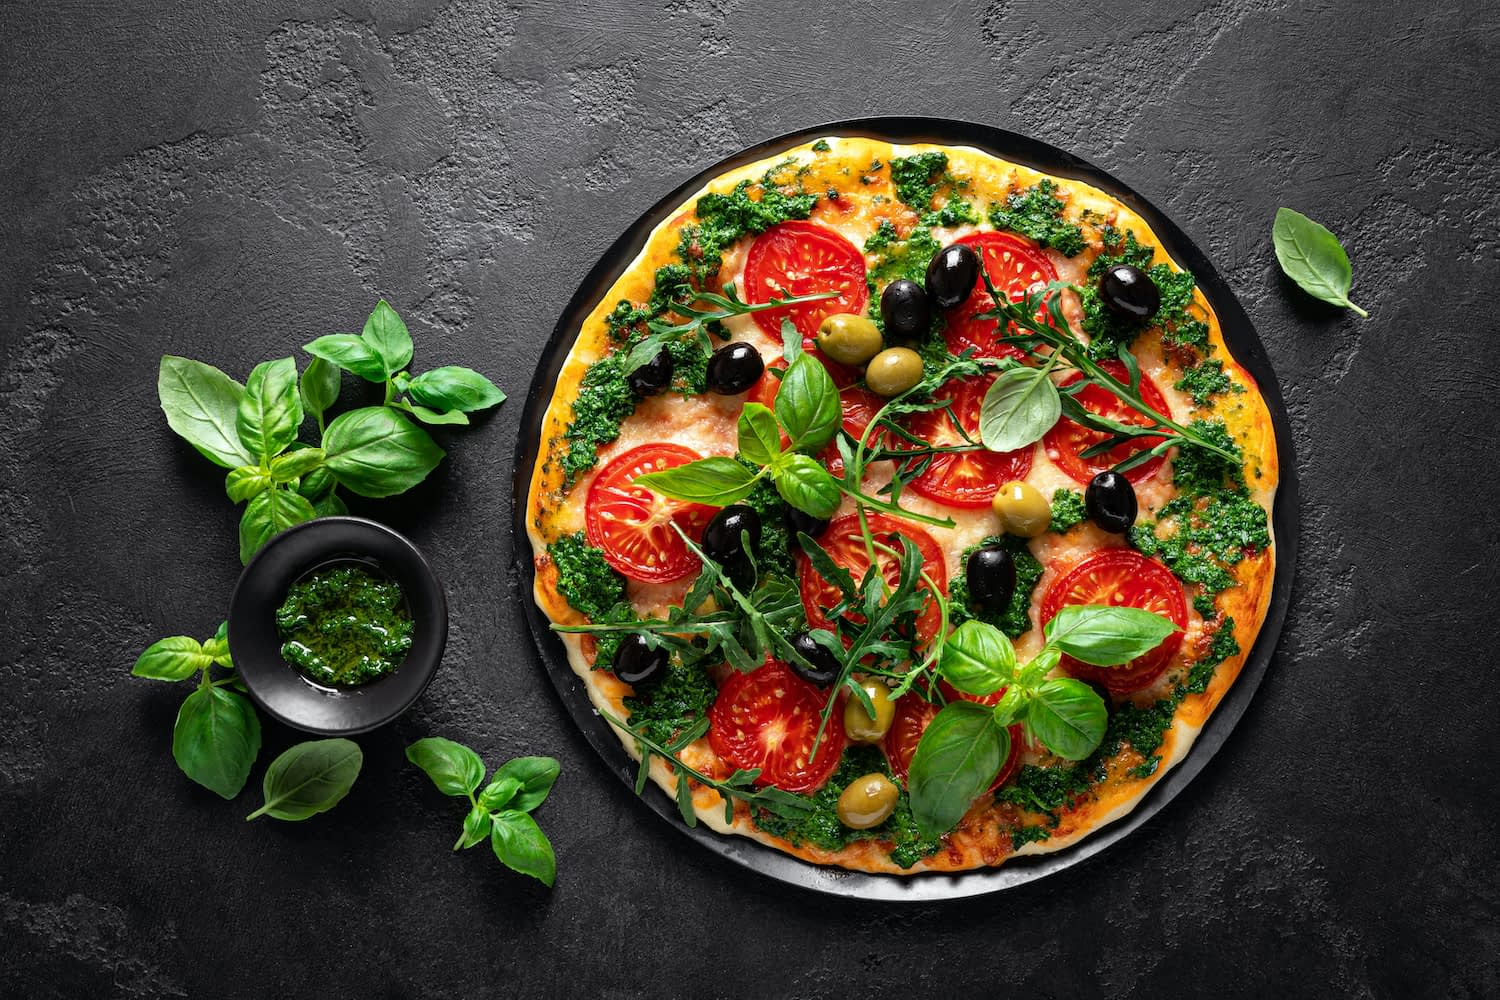 Simple, traditional thin crust Italian pizza with basil, tomato, pesto and olives